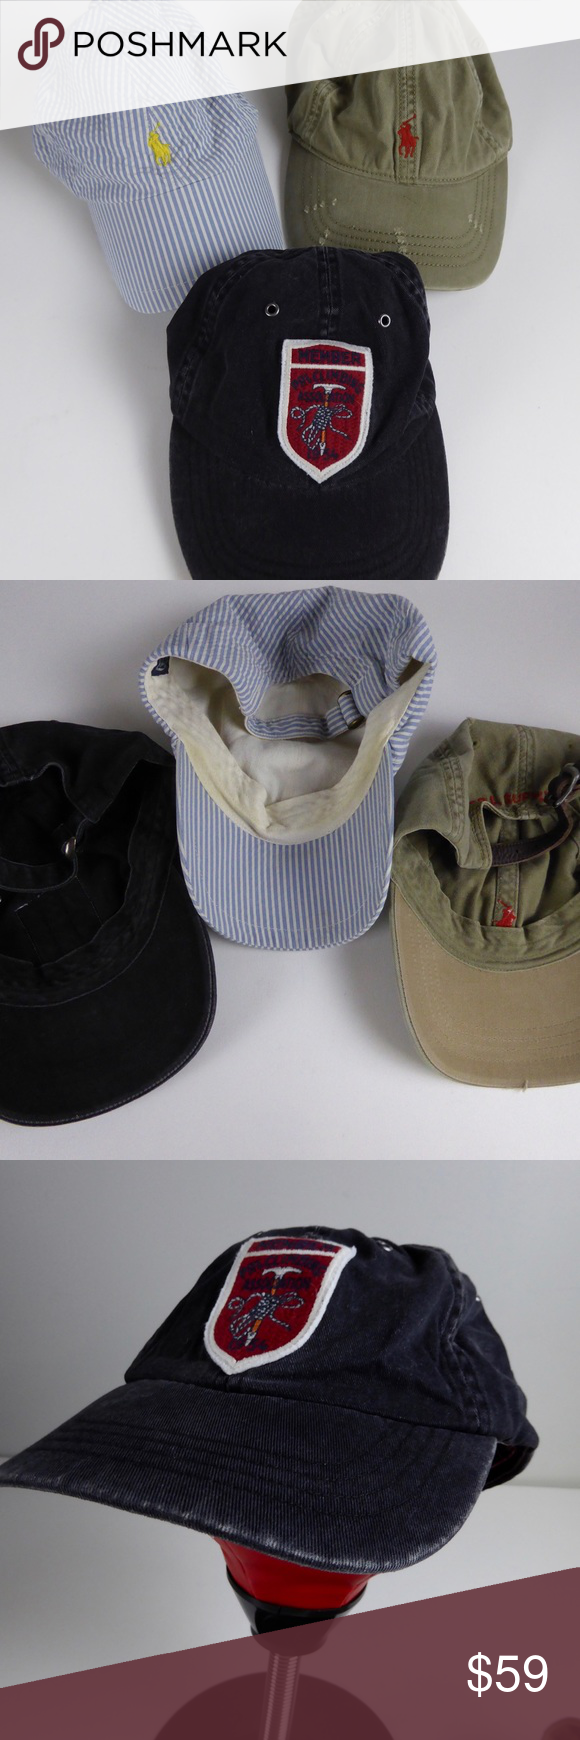 b857f384fdb Polo Ralph Lauren Hat Bundle Baseball Caps Set 3 Polo Ralph Lauren 🏇🏽3 Hat  Bundle 6 panel Hats 🏇🏽Adjustable buckles straps 🏇🏽Pony logo embroidery  ...